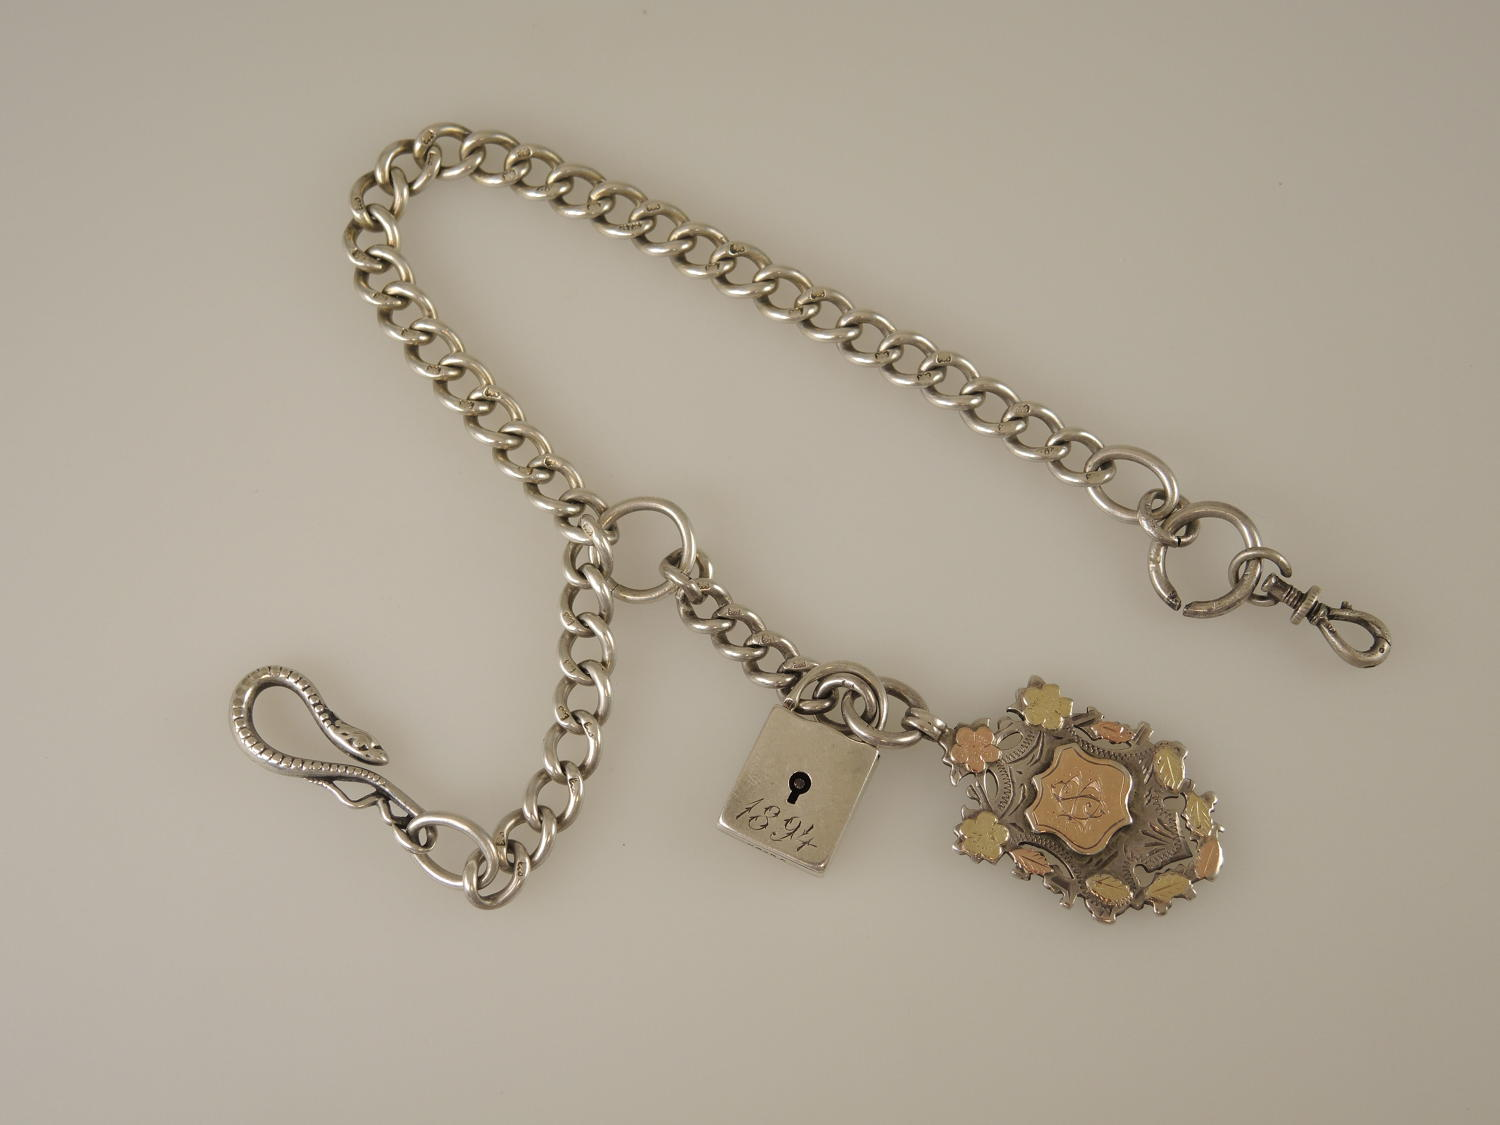 English silver watch chain with unusual fobs and Snake hook c1900